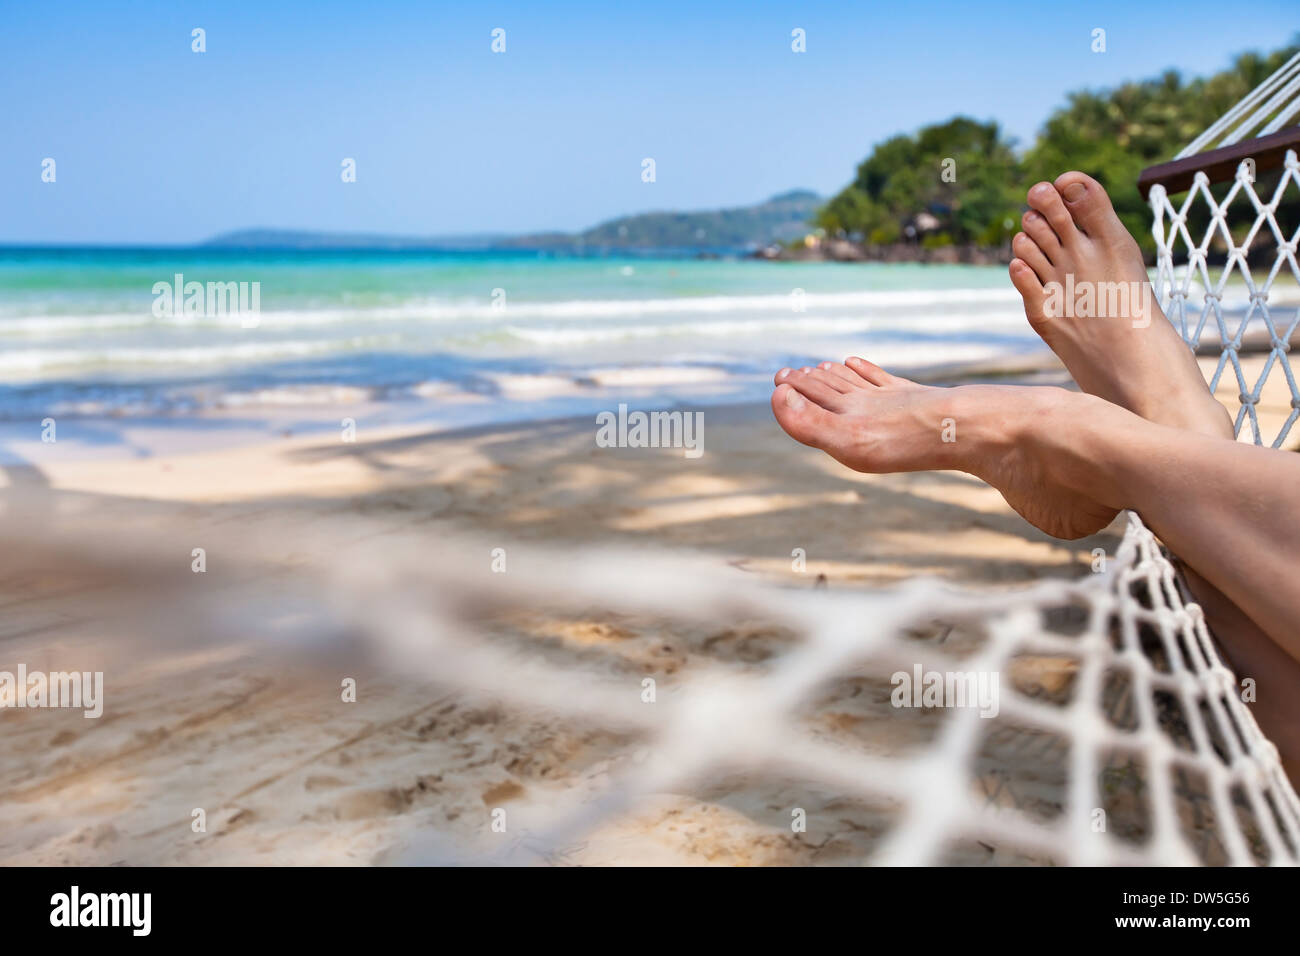 woman feet in hammock on the beach - Stock Image